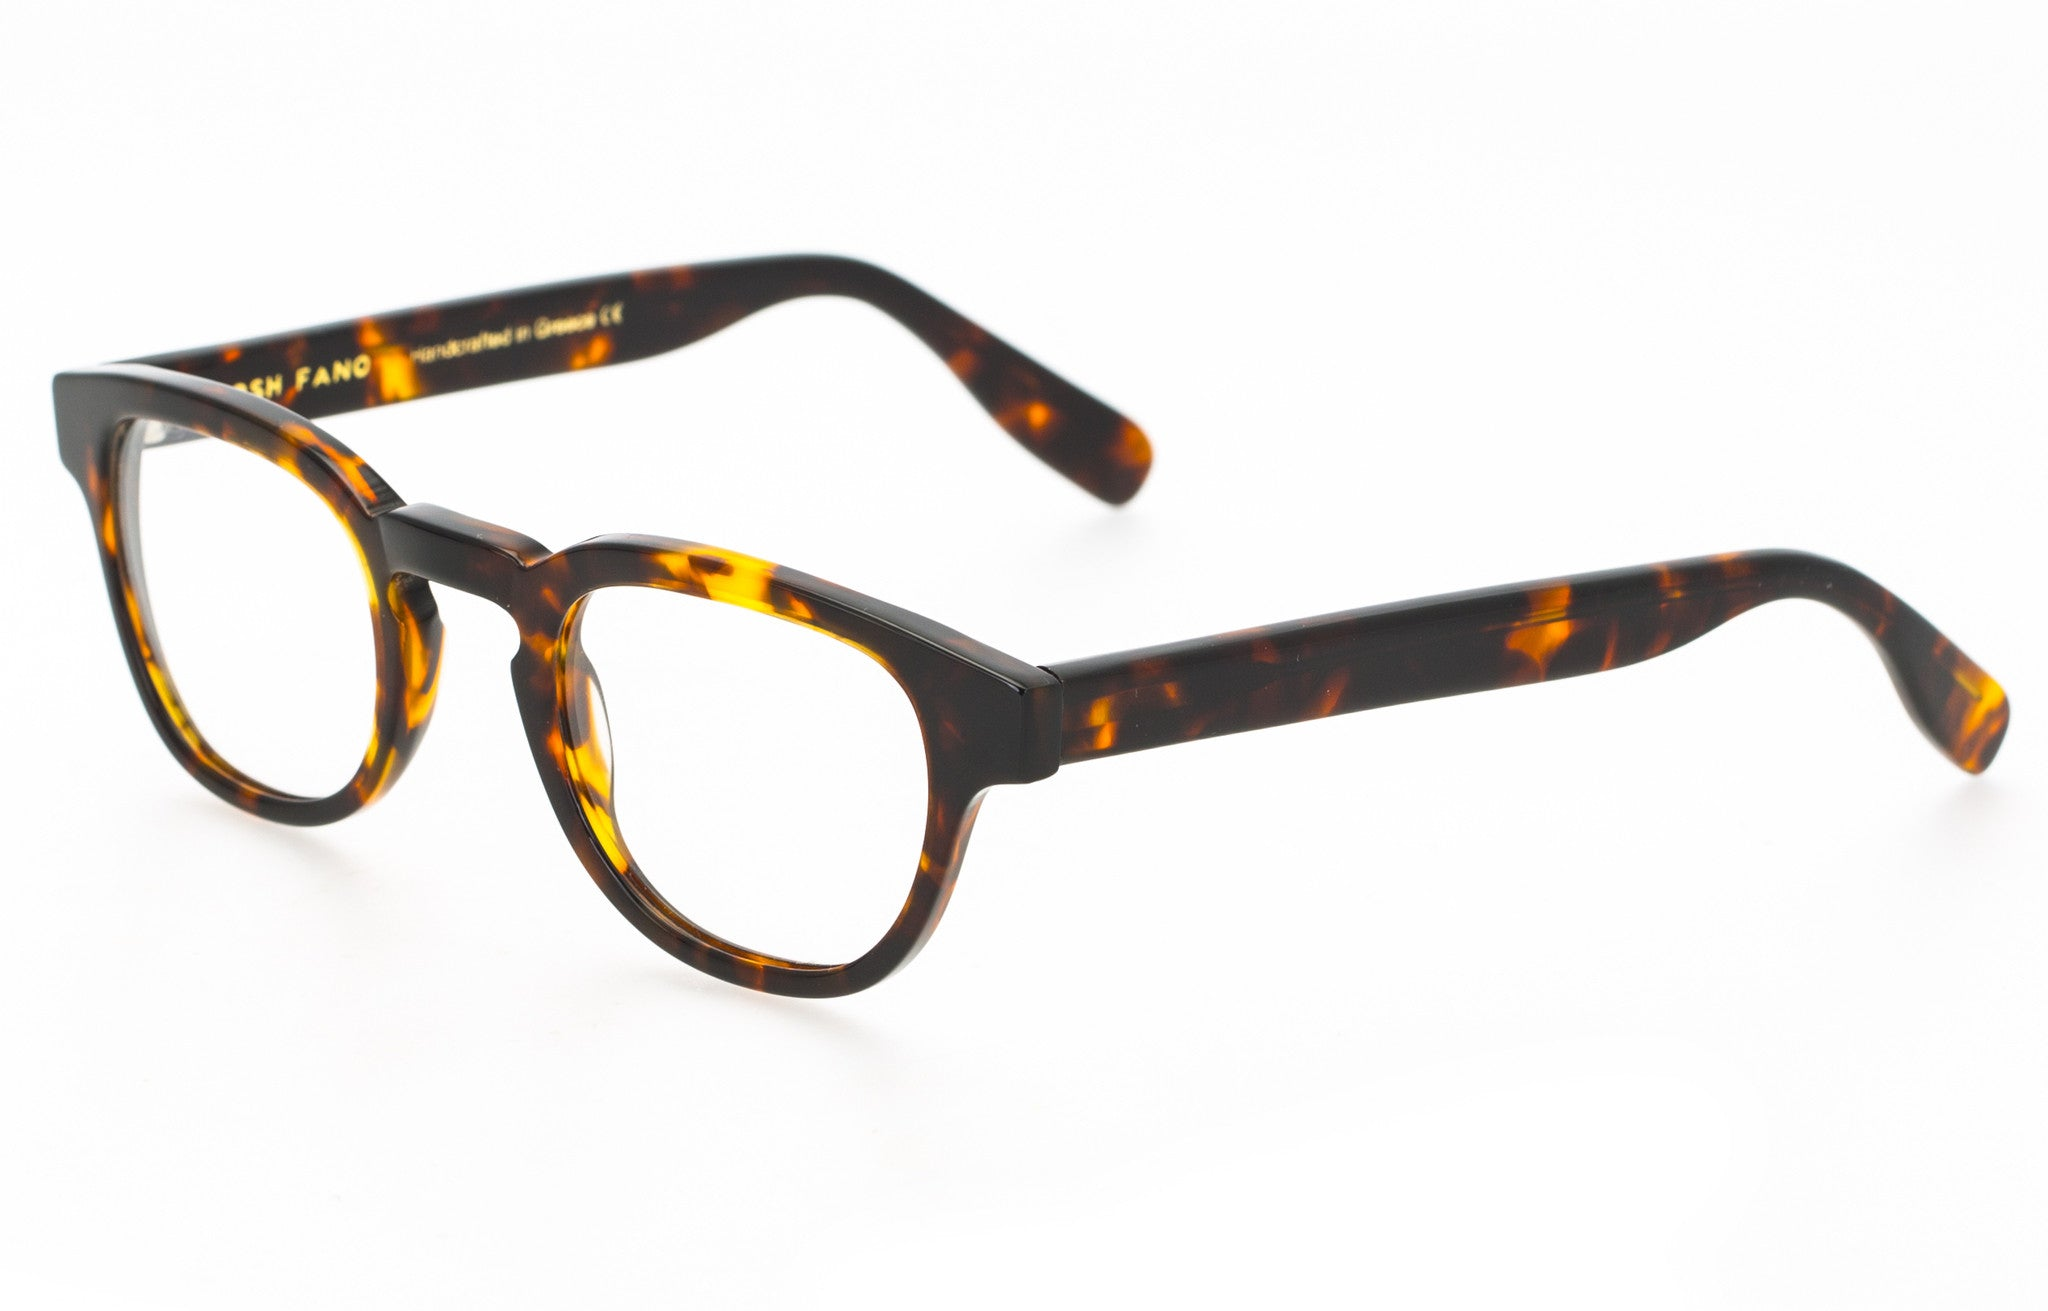 Oxford | Havana - Josh Fano Prescription Glasses Uk